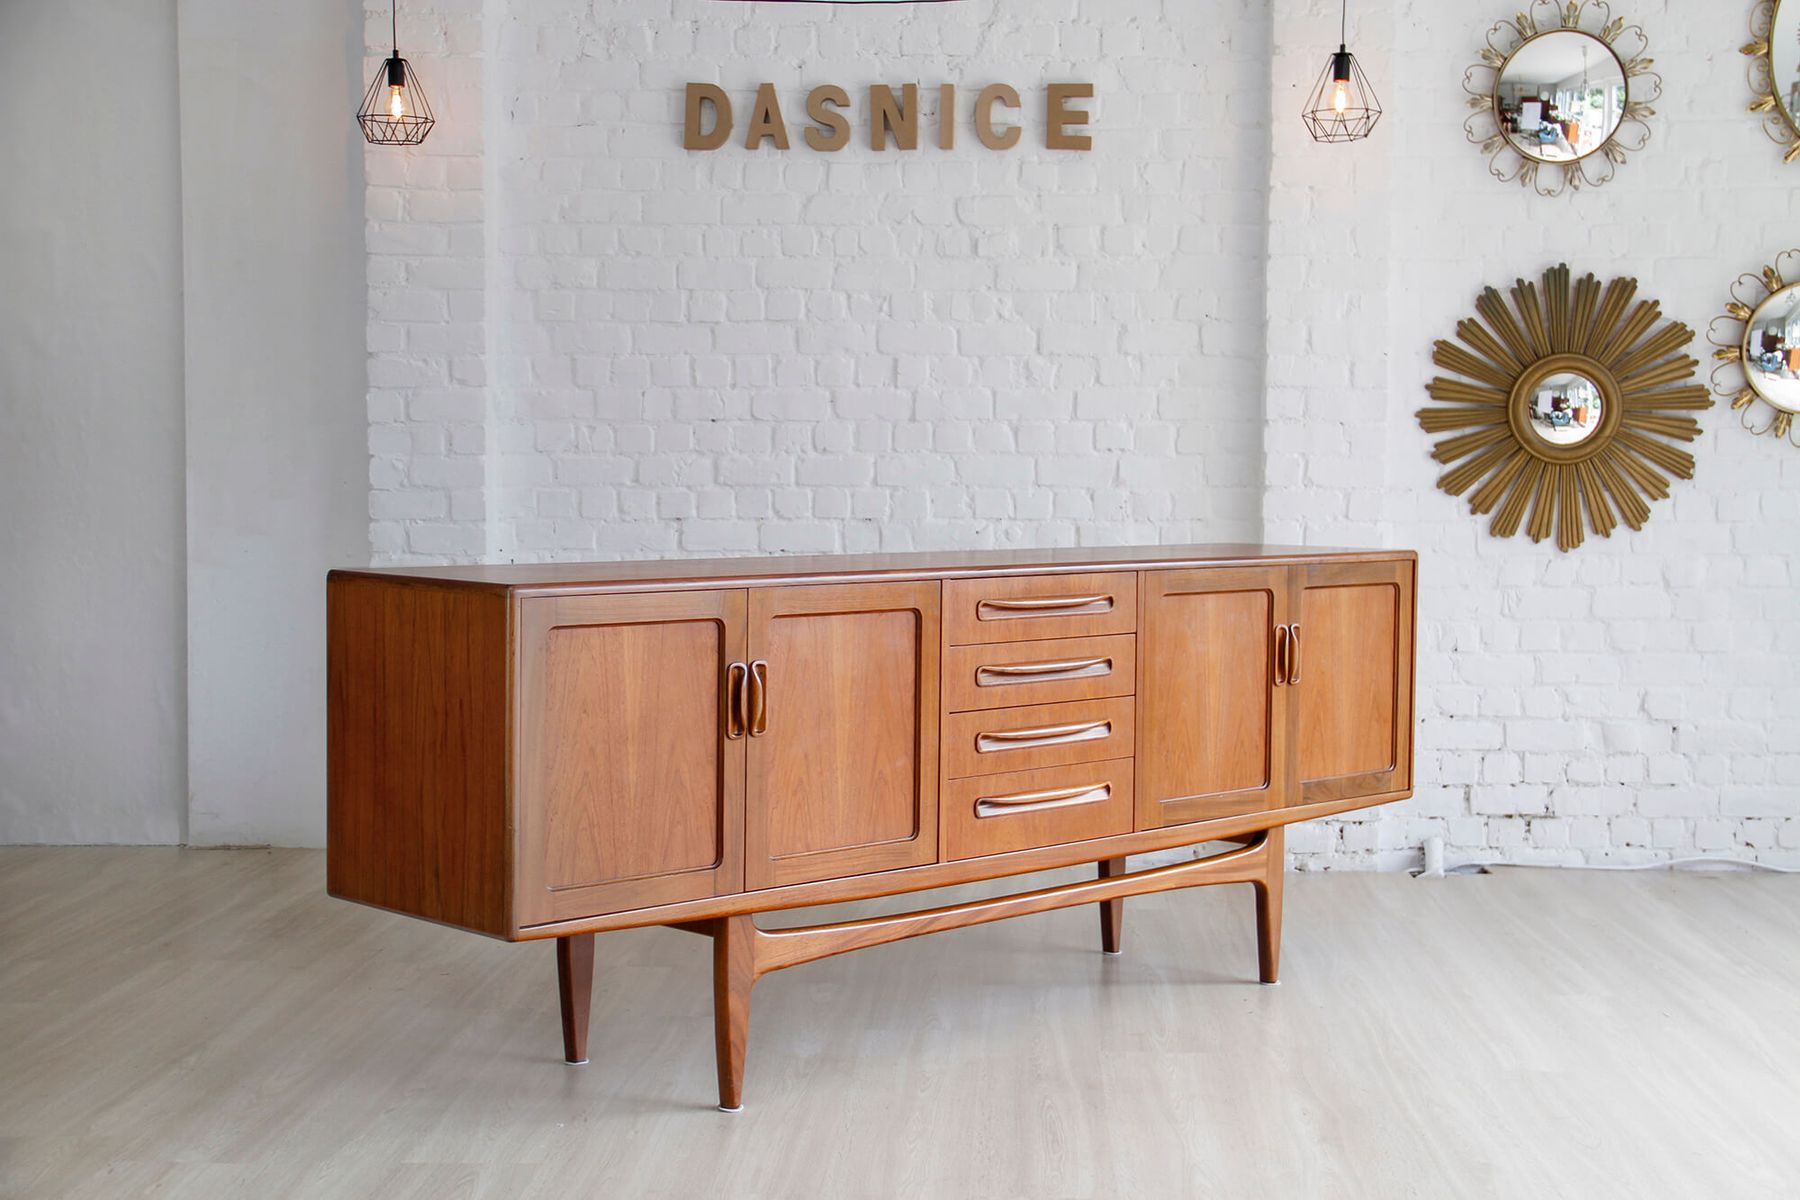 vintage sideboard in teak by ib kofod larsen for g plan. Black Bedroom Furniture Sets. Home Design Ideas